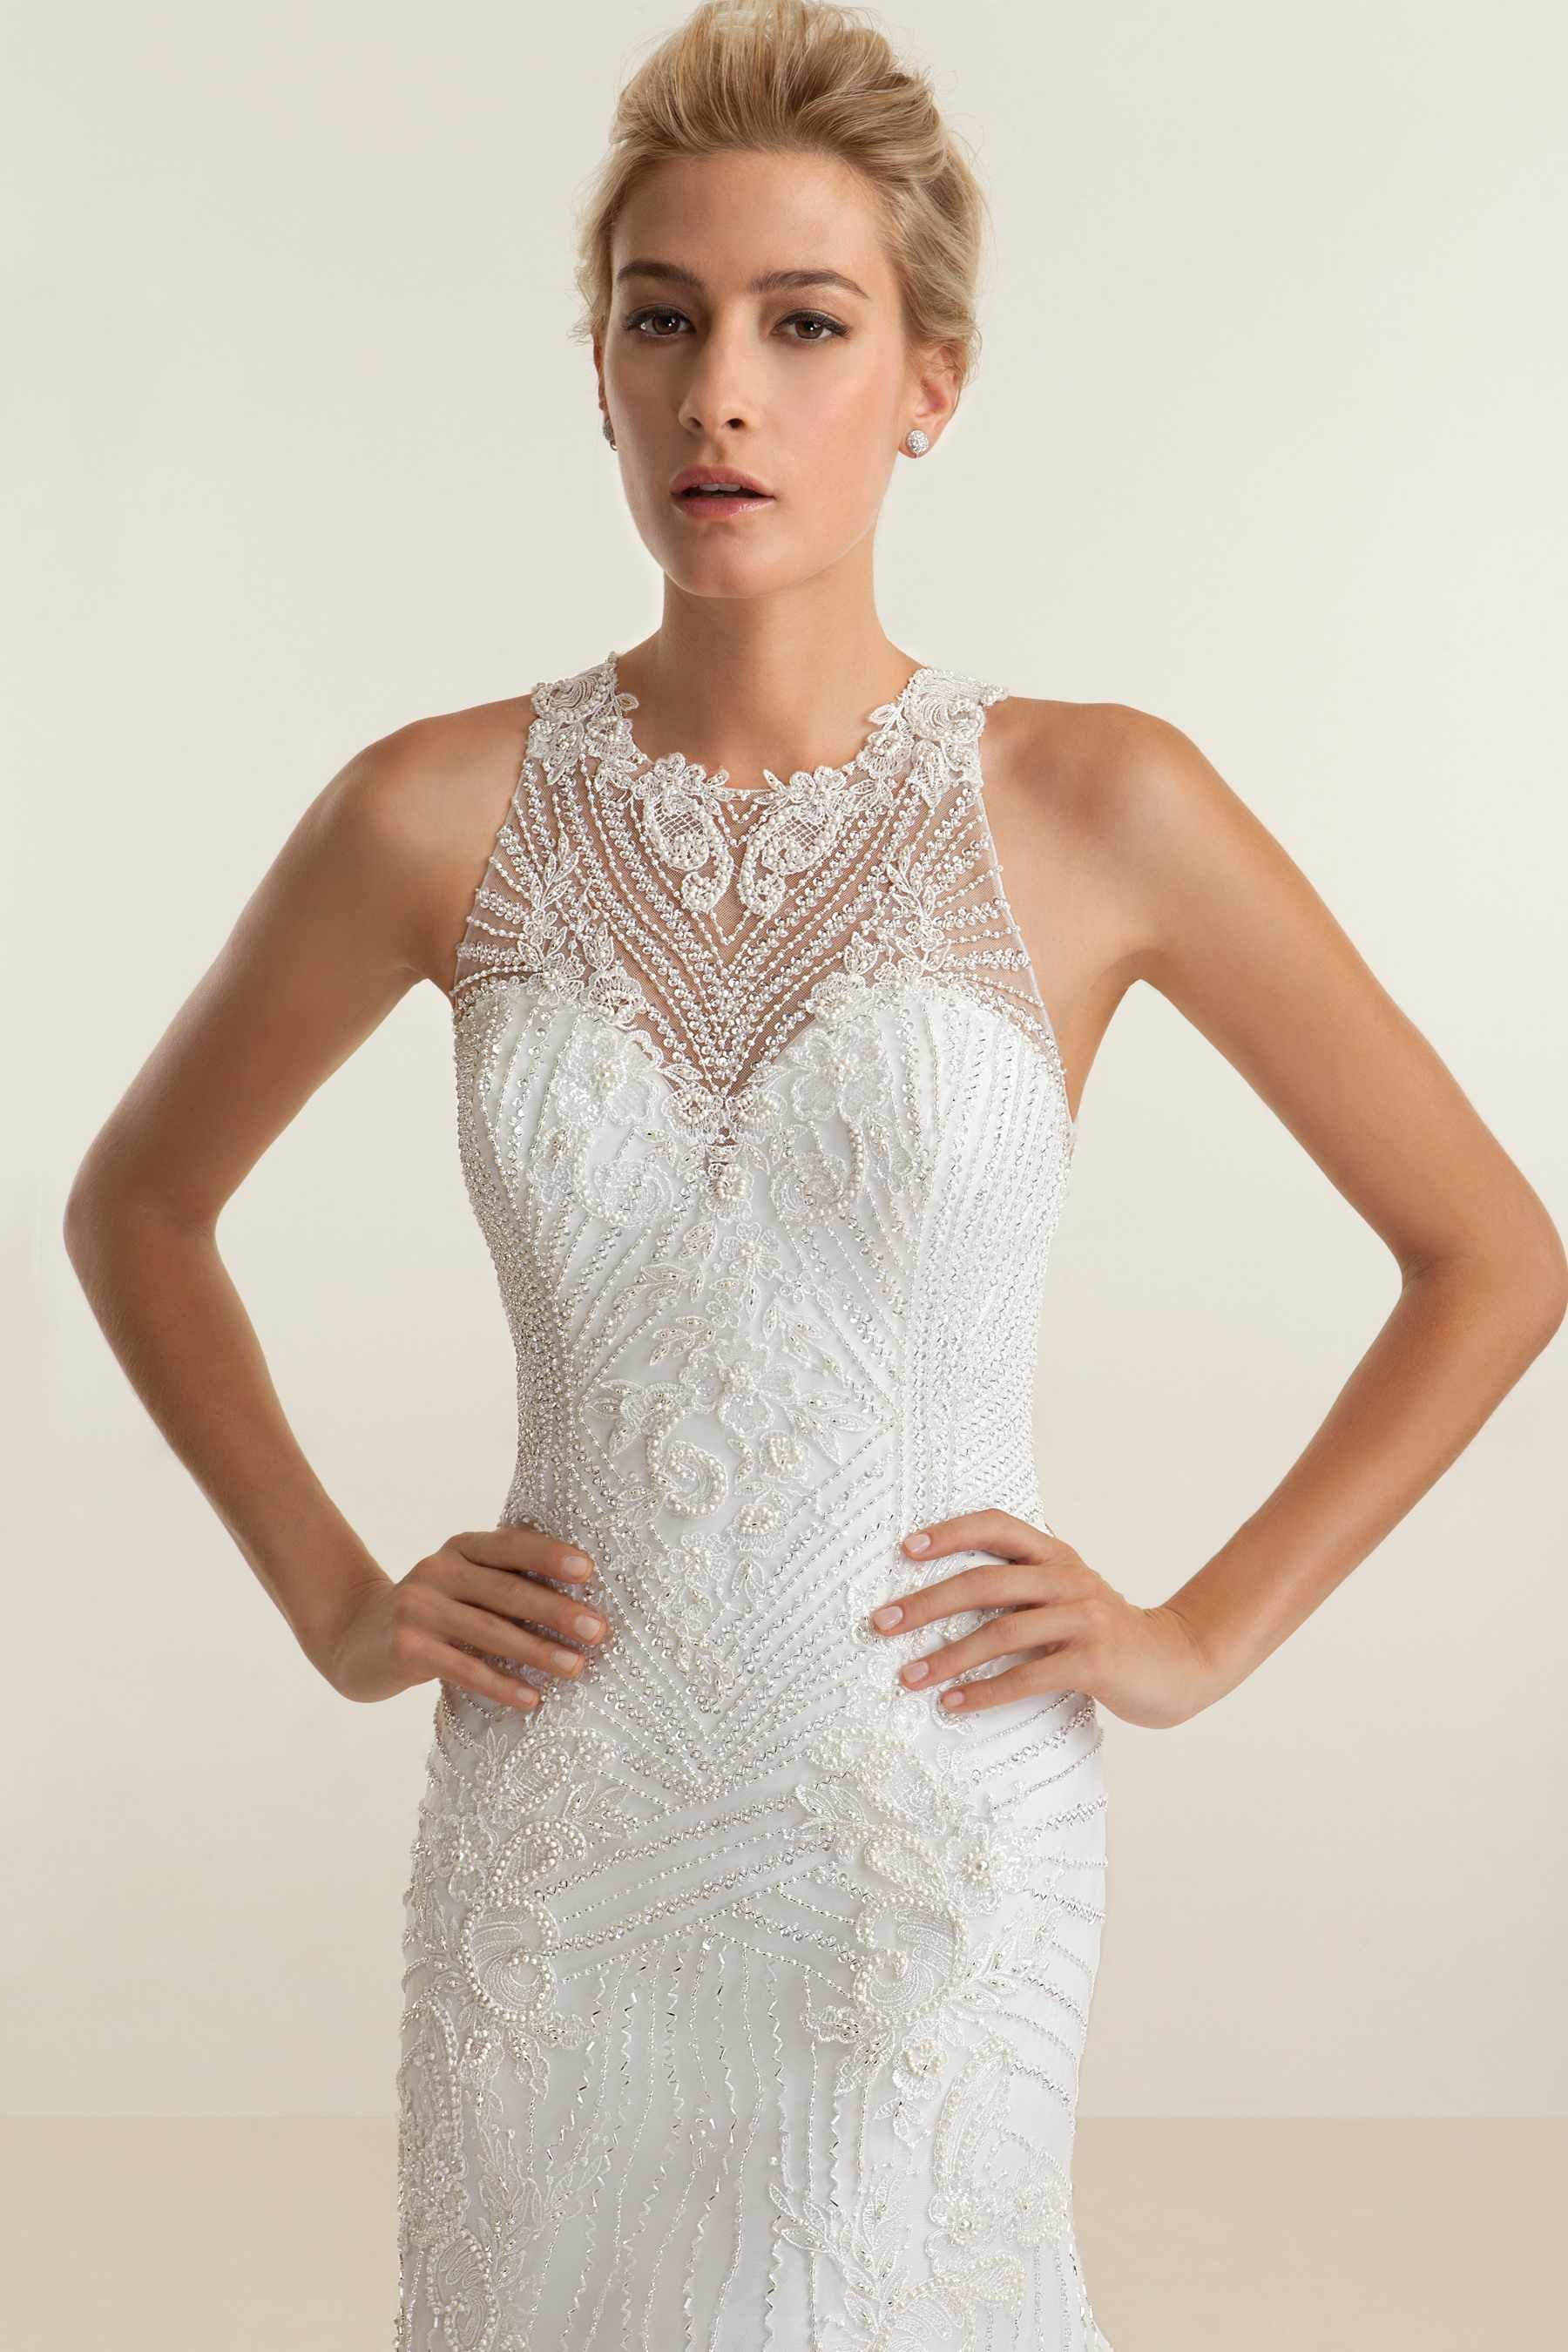 Platinum edition wedding dresses  Elegant Beaded Neckline on this Beautiful Wedding Gown from the